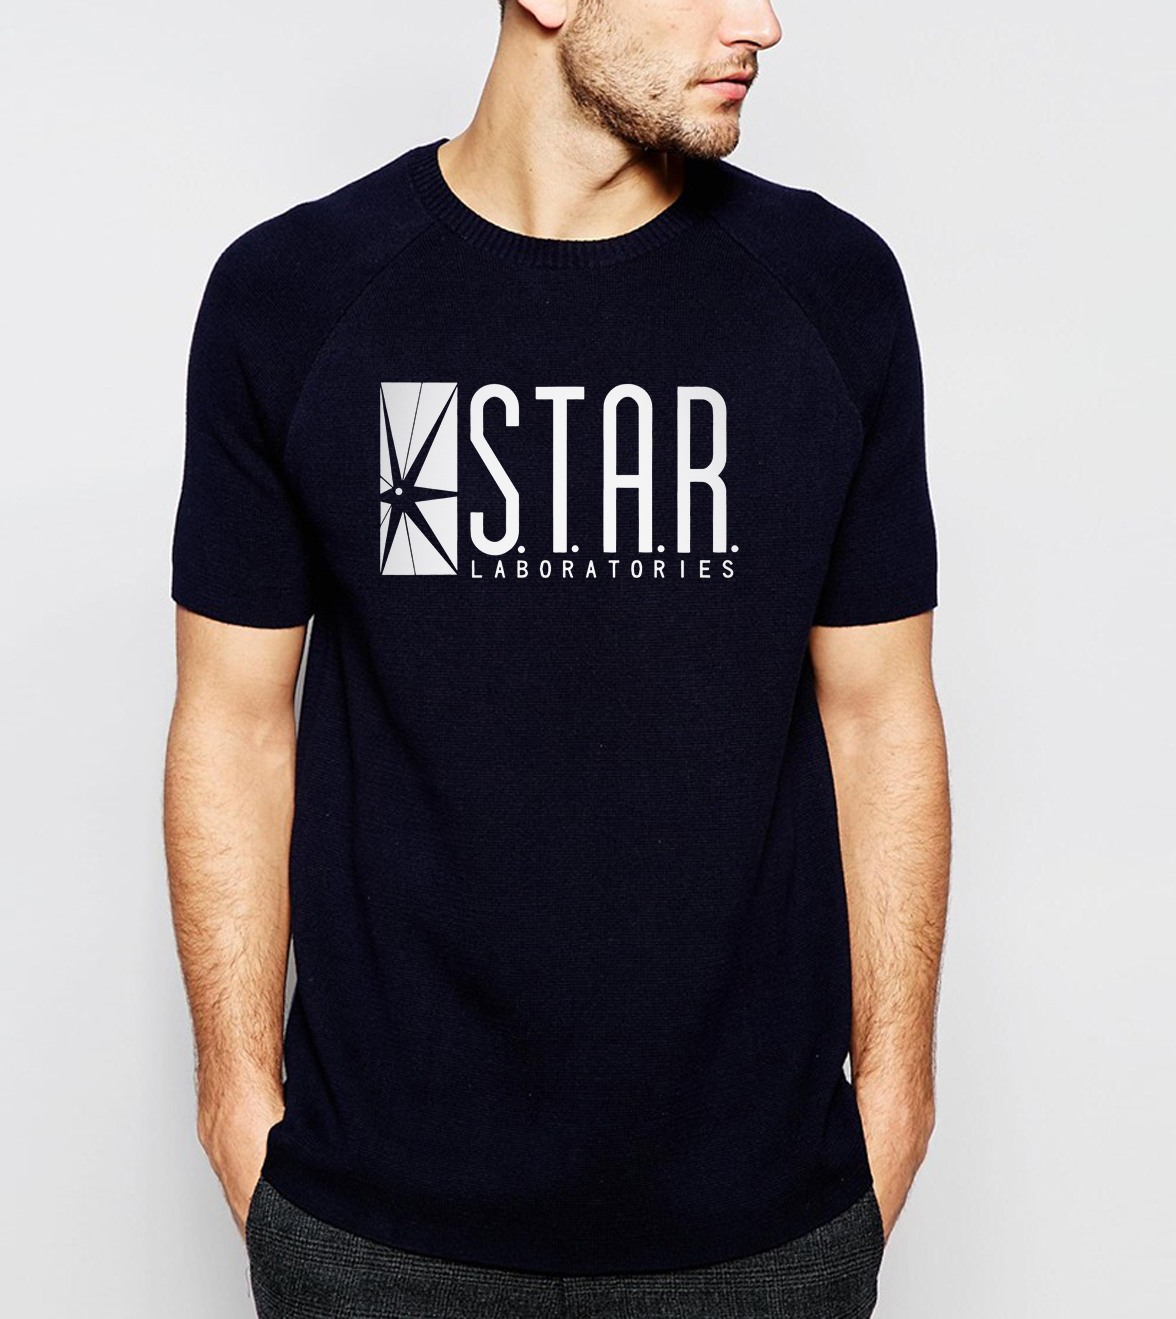 2019 Summer New Style Men T Shirts Fashion STAR S.T.A.R. labs T-Shirt 100% Cotton High Quality Tops Tees Brand clothing S-3XL